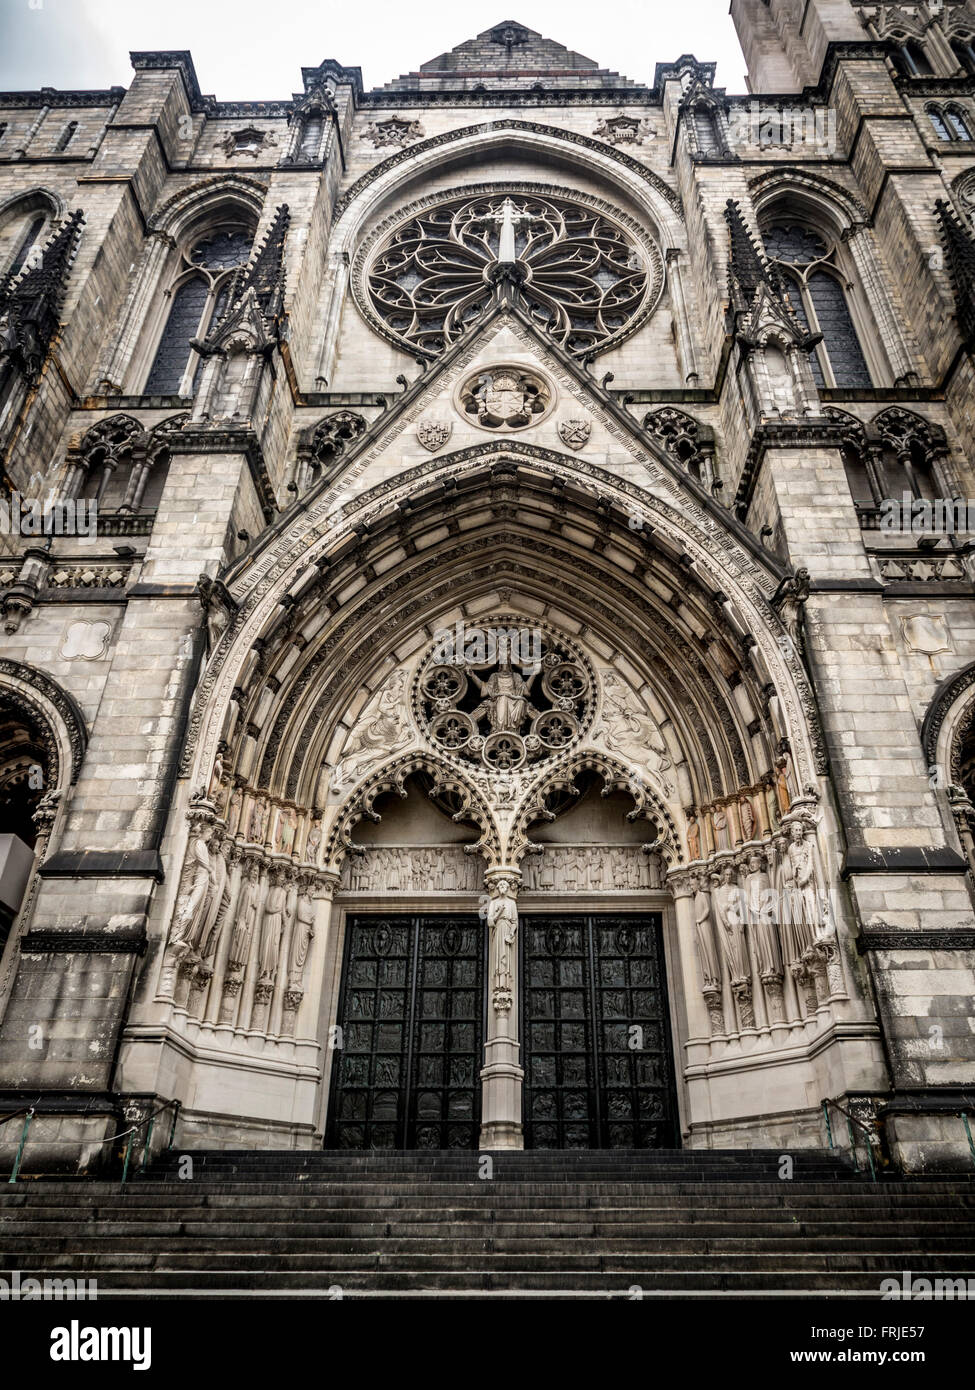 Cathedral Church of Saint John the Divine, New York City, USA. - Stock Image